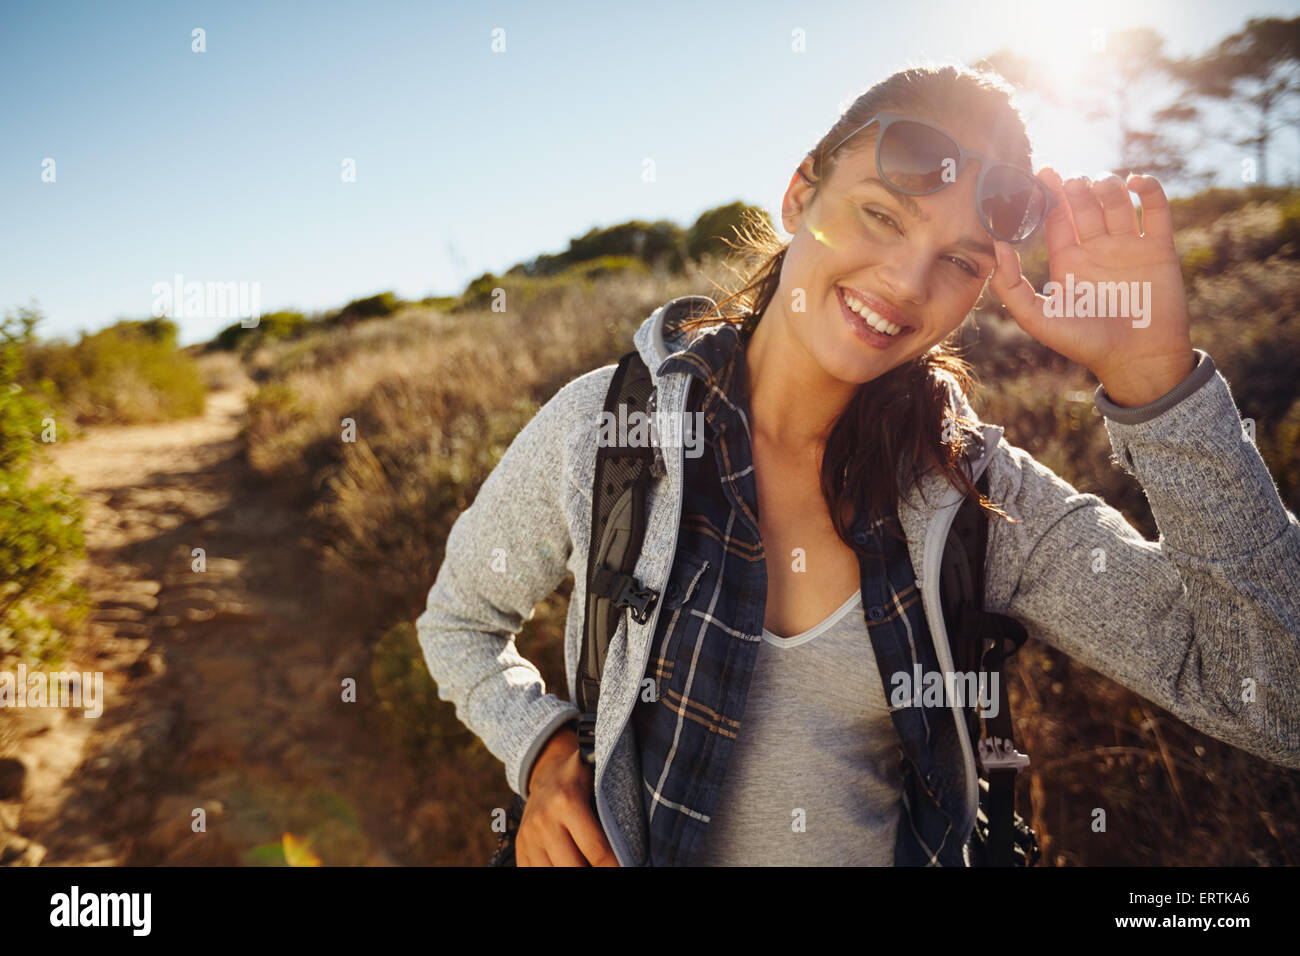 Portrait of a happy young hiker woman in nature. Young caucasian woman wearing sunglasses looking at camera with - Stock Image